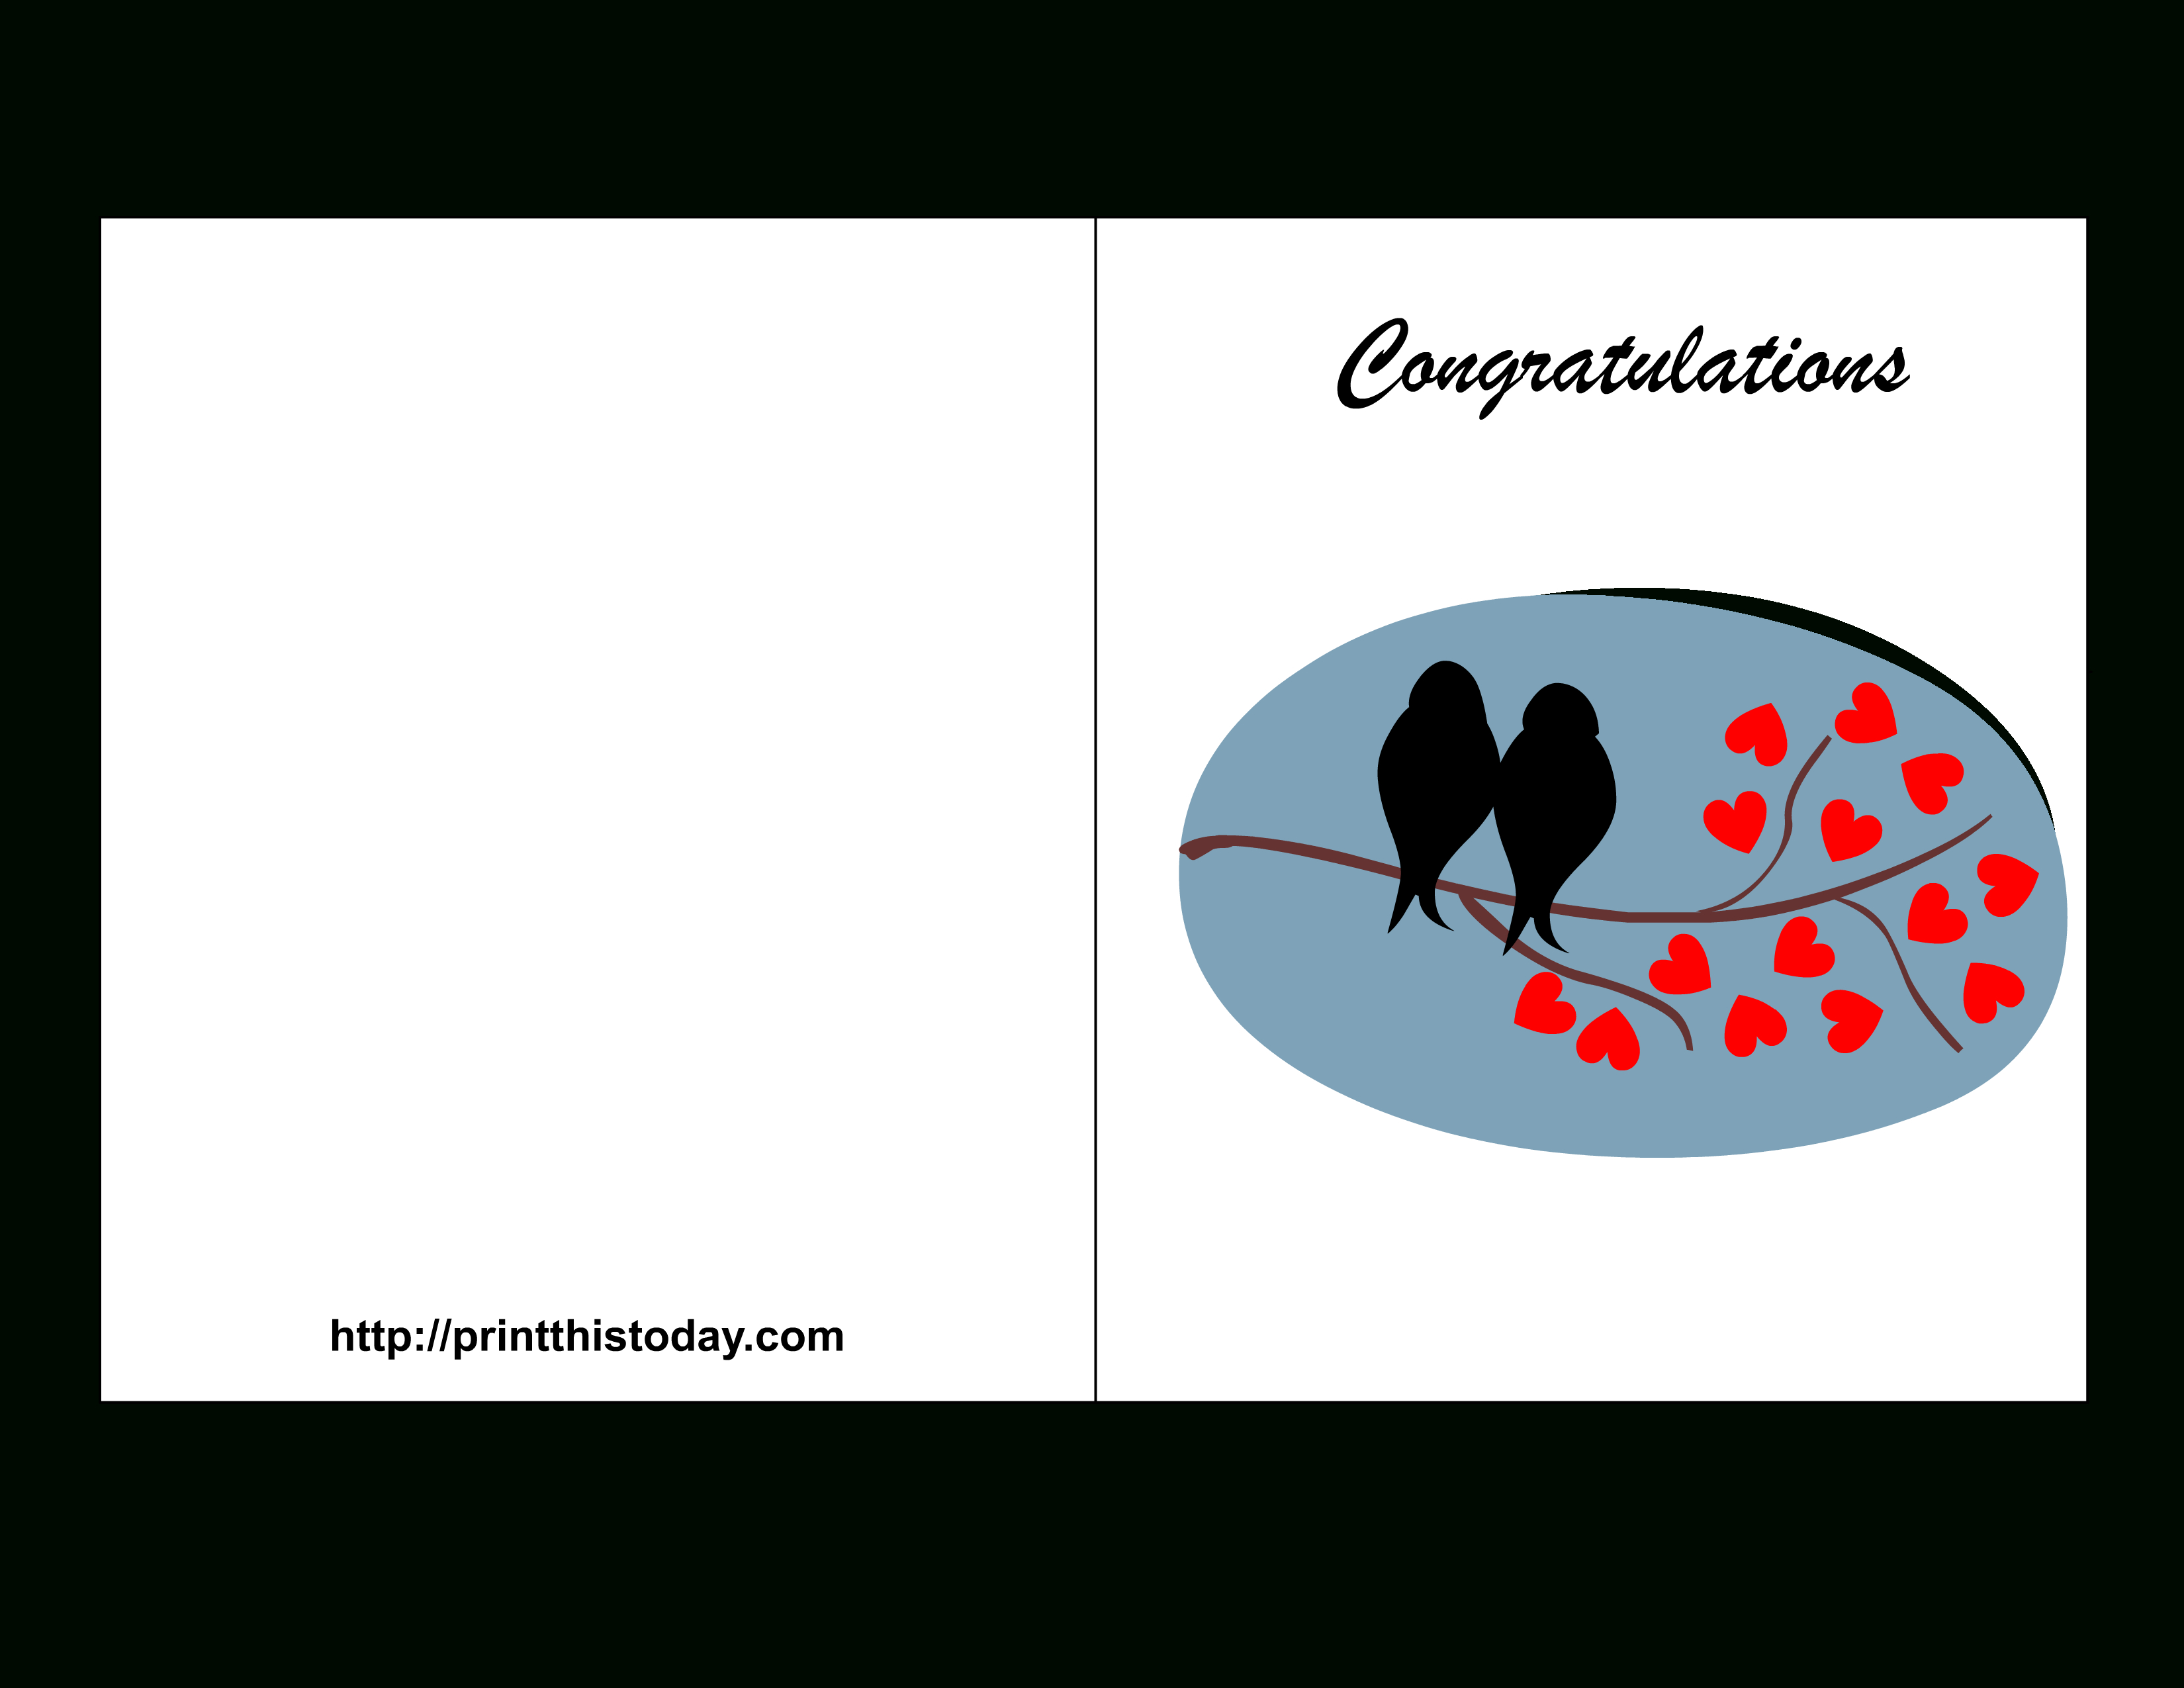 Congratulations Card To Print - Demir.iso-Consulting.co - Free Printable Wedding Congratulations Greeting Cards